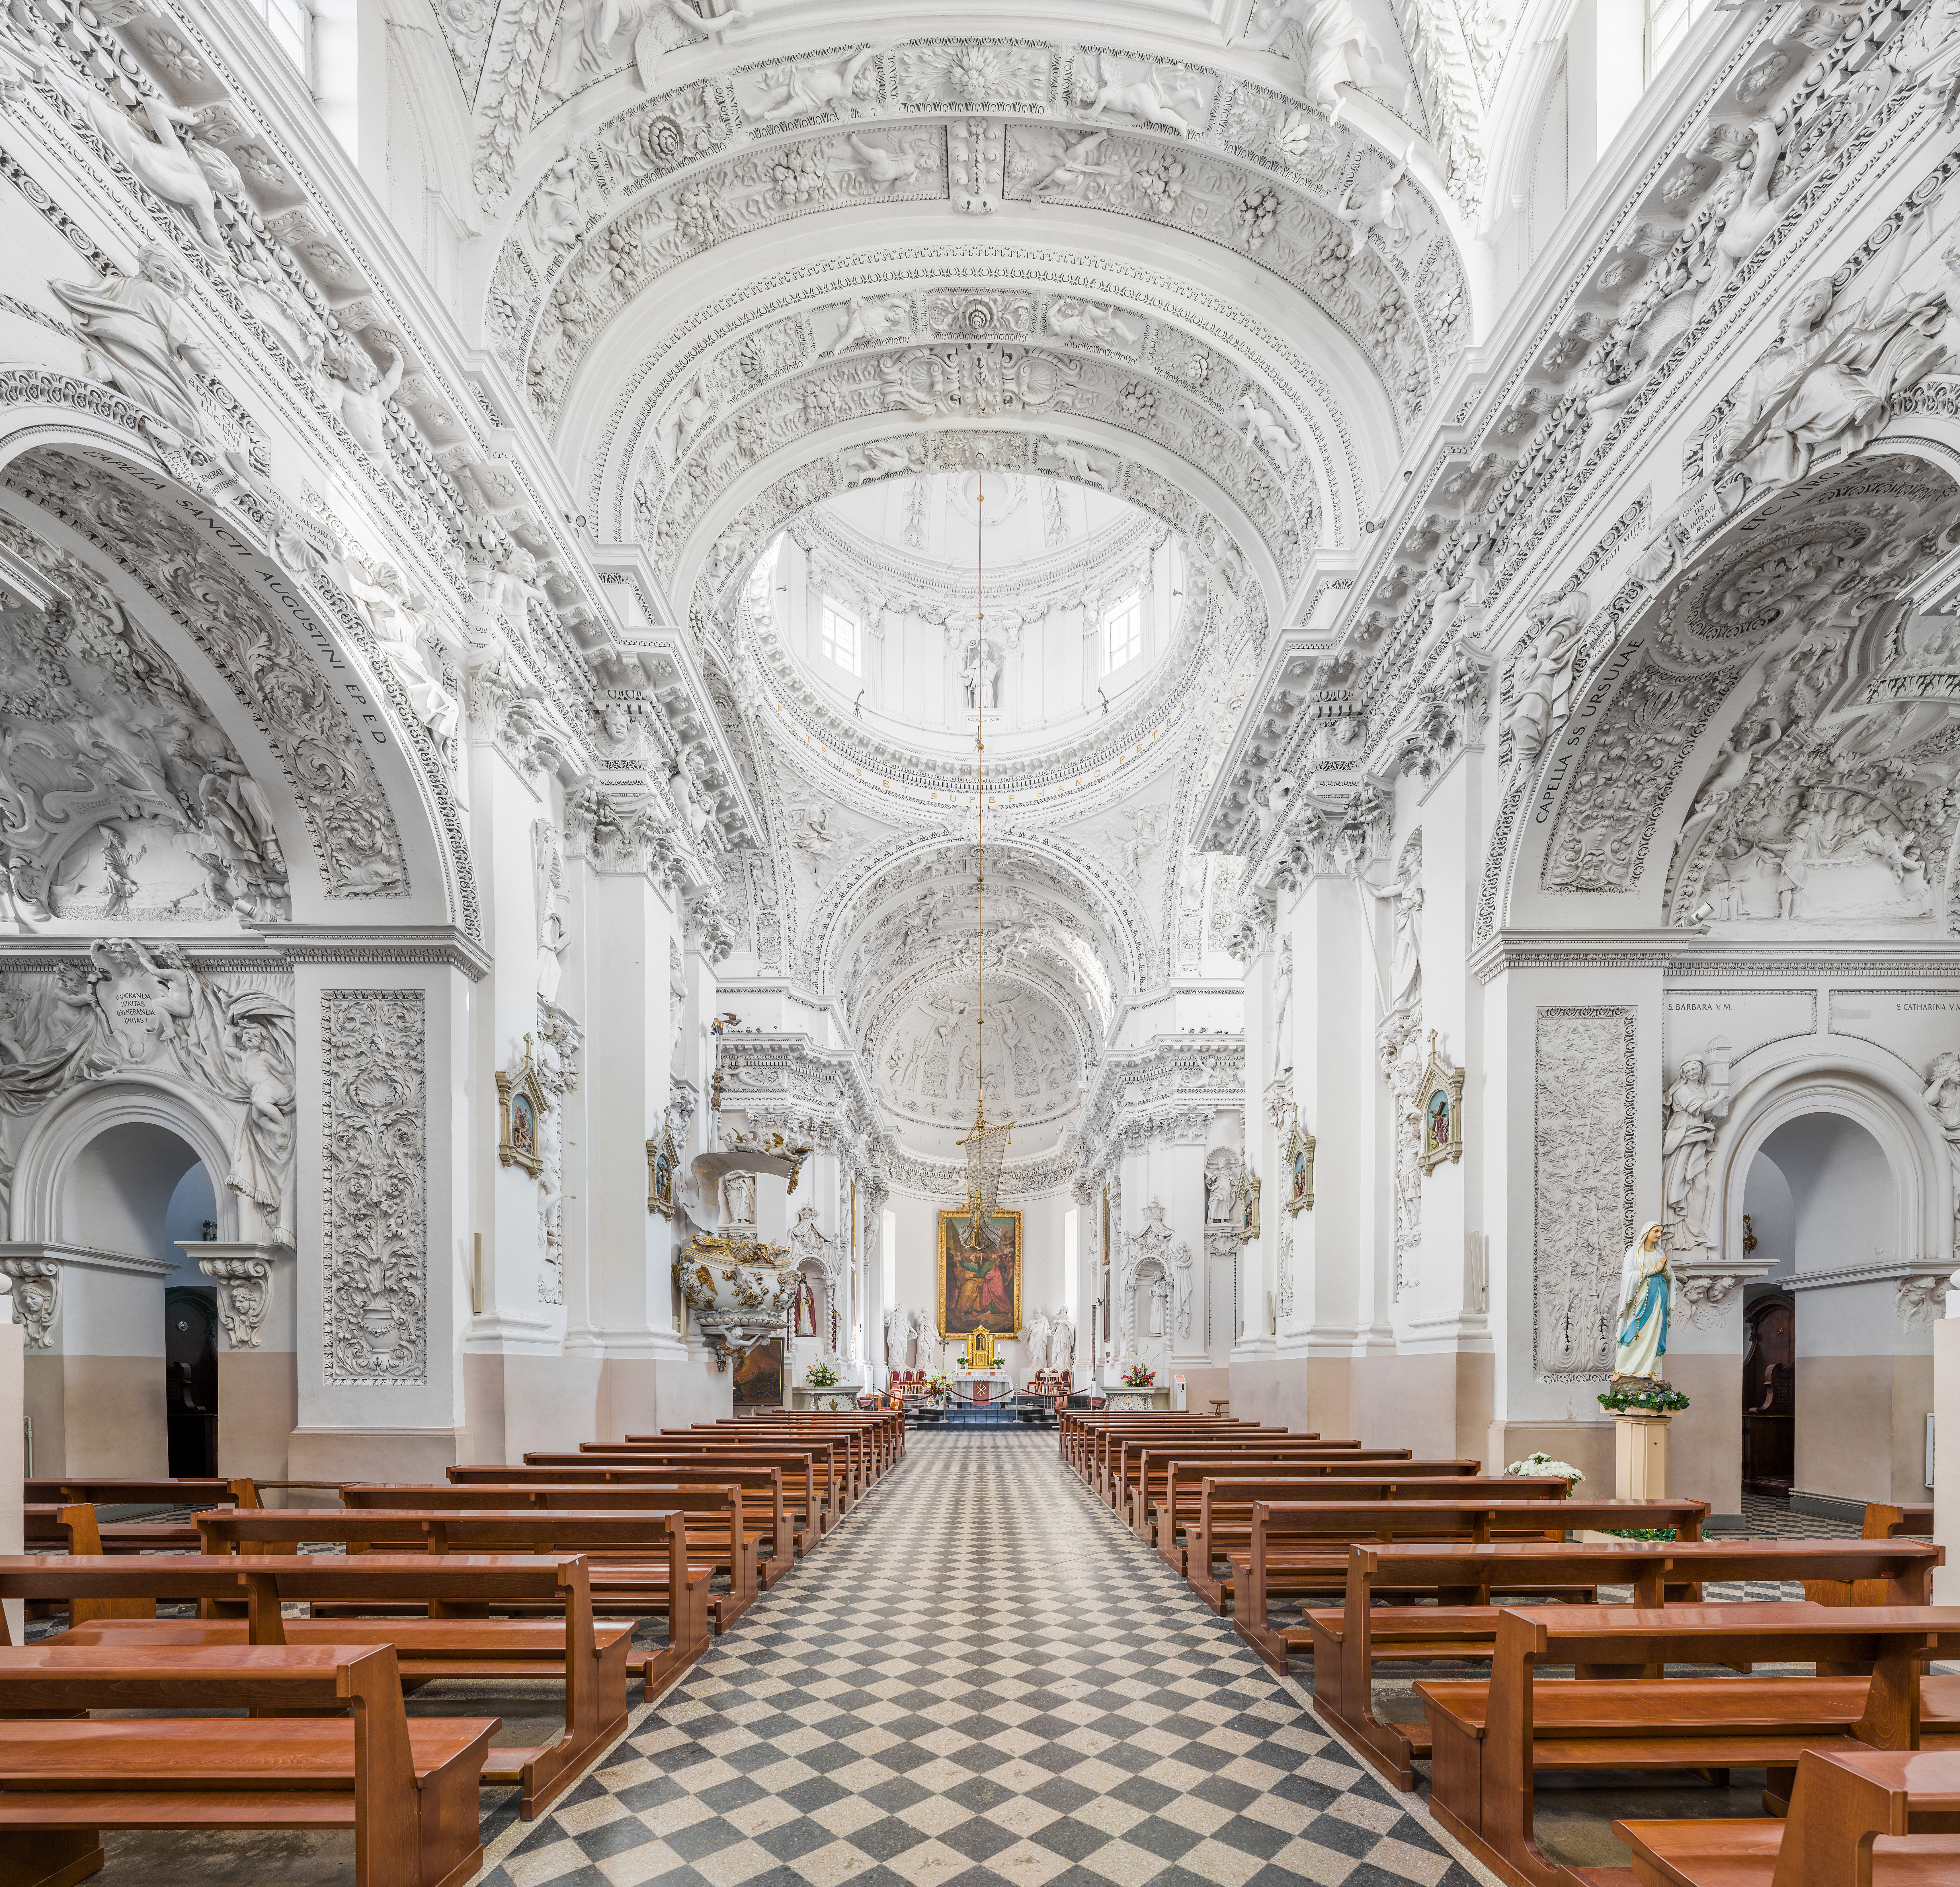 architecture drawing 500 days of summer. Beautiful Architecture Church Of St Peter And Paul Is A Baroque Architecture Masterpiece With Architecture Drawing 500 Days Of Summer E